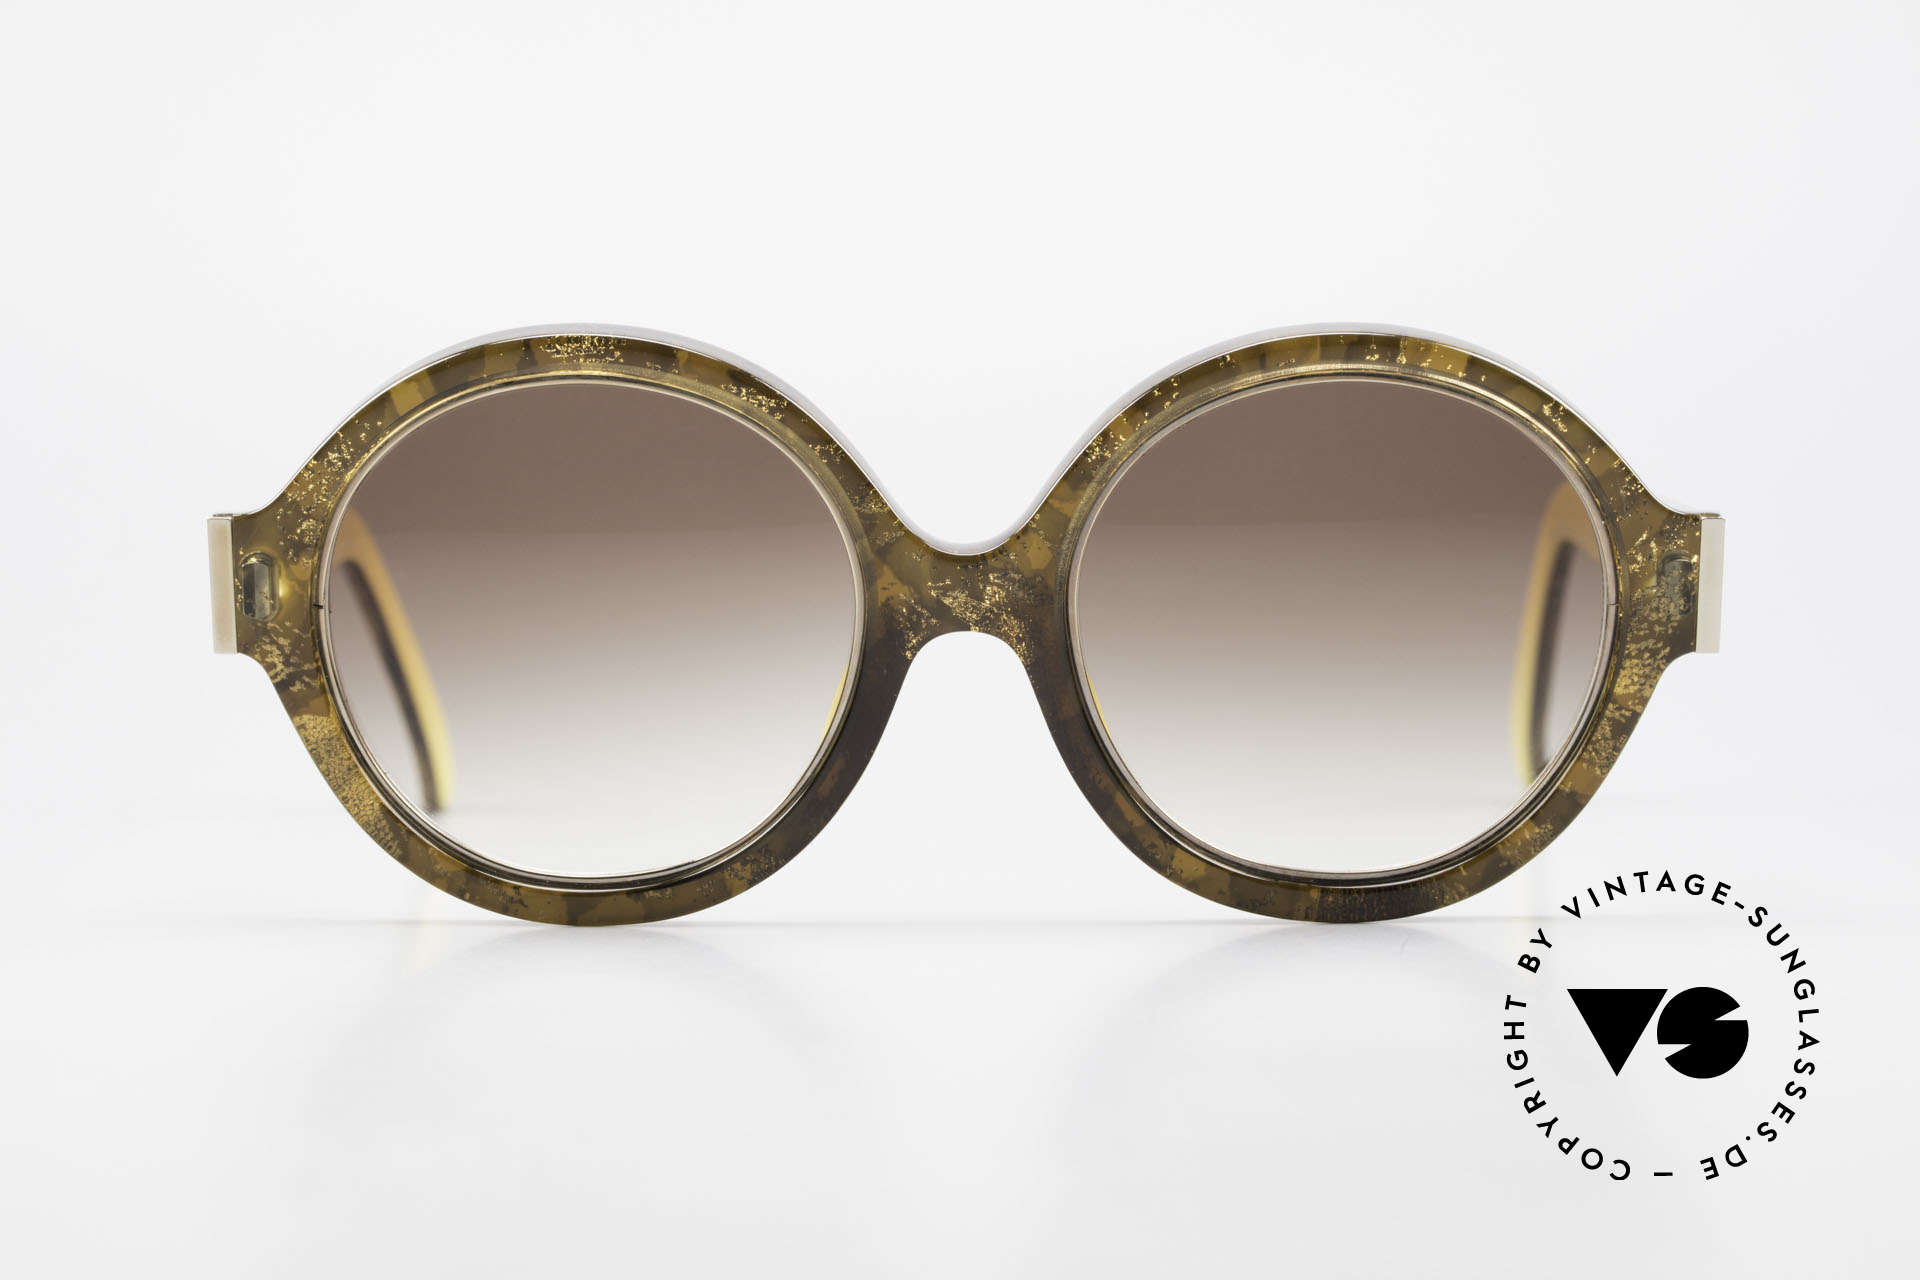 Christian Dior 2446 Round 80's Sunglasses Ladies, glamorous colors & pattern thanks to Optyl material, Made for Women